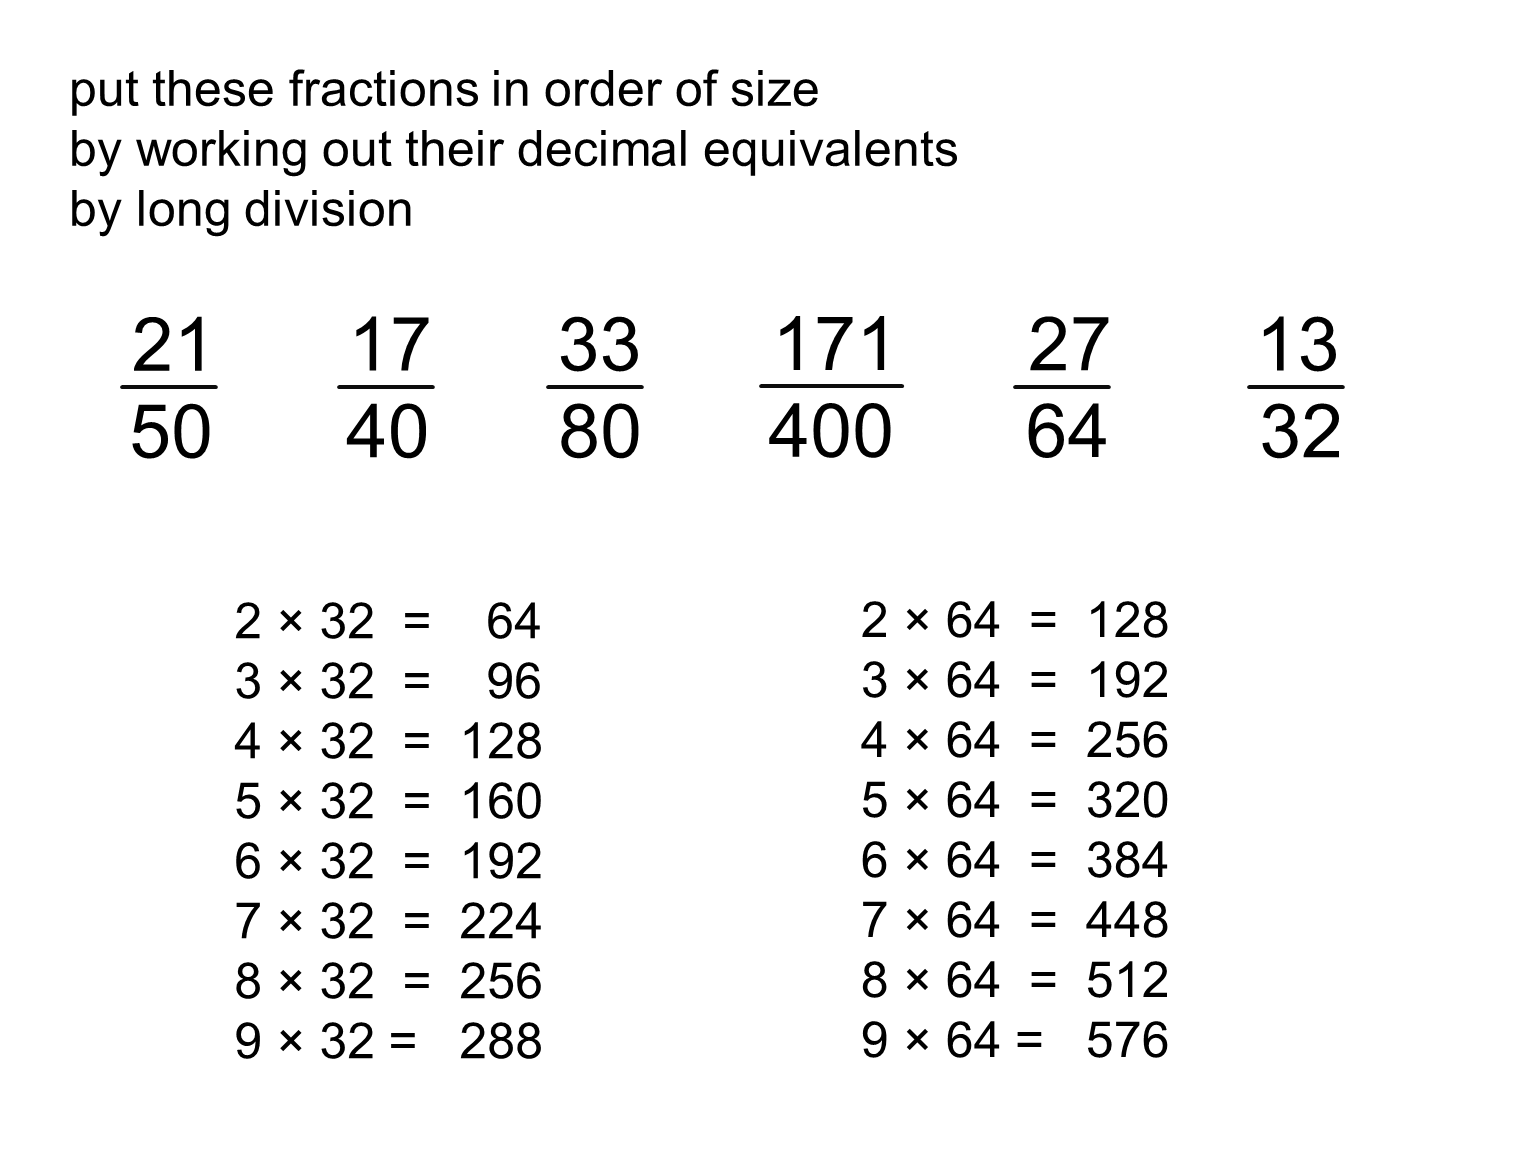 fraction to decimal w/ long division, including inquiry to